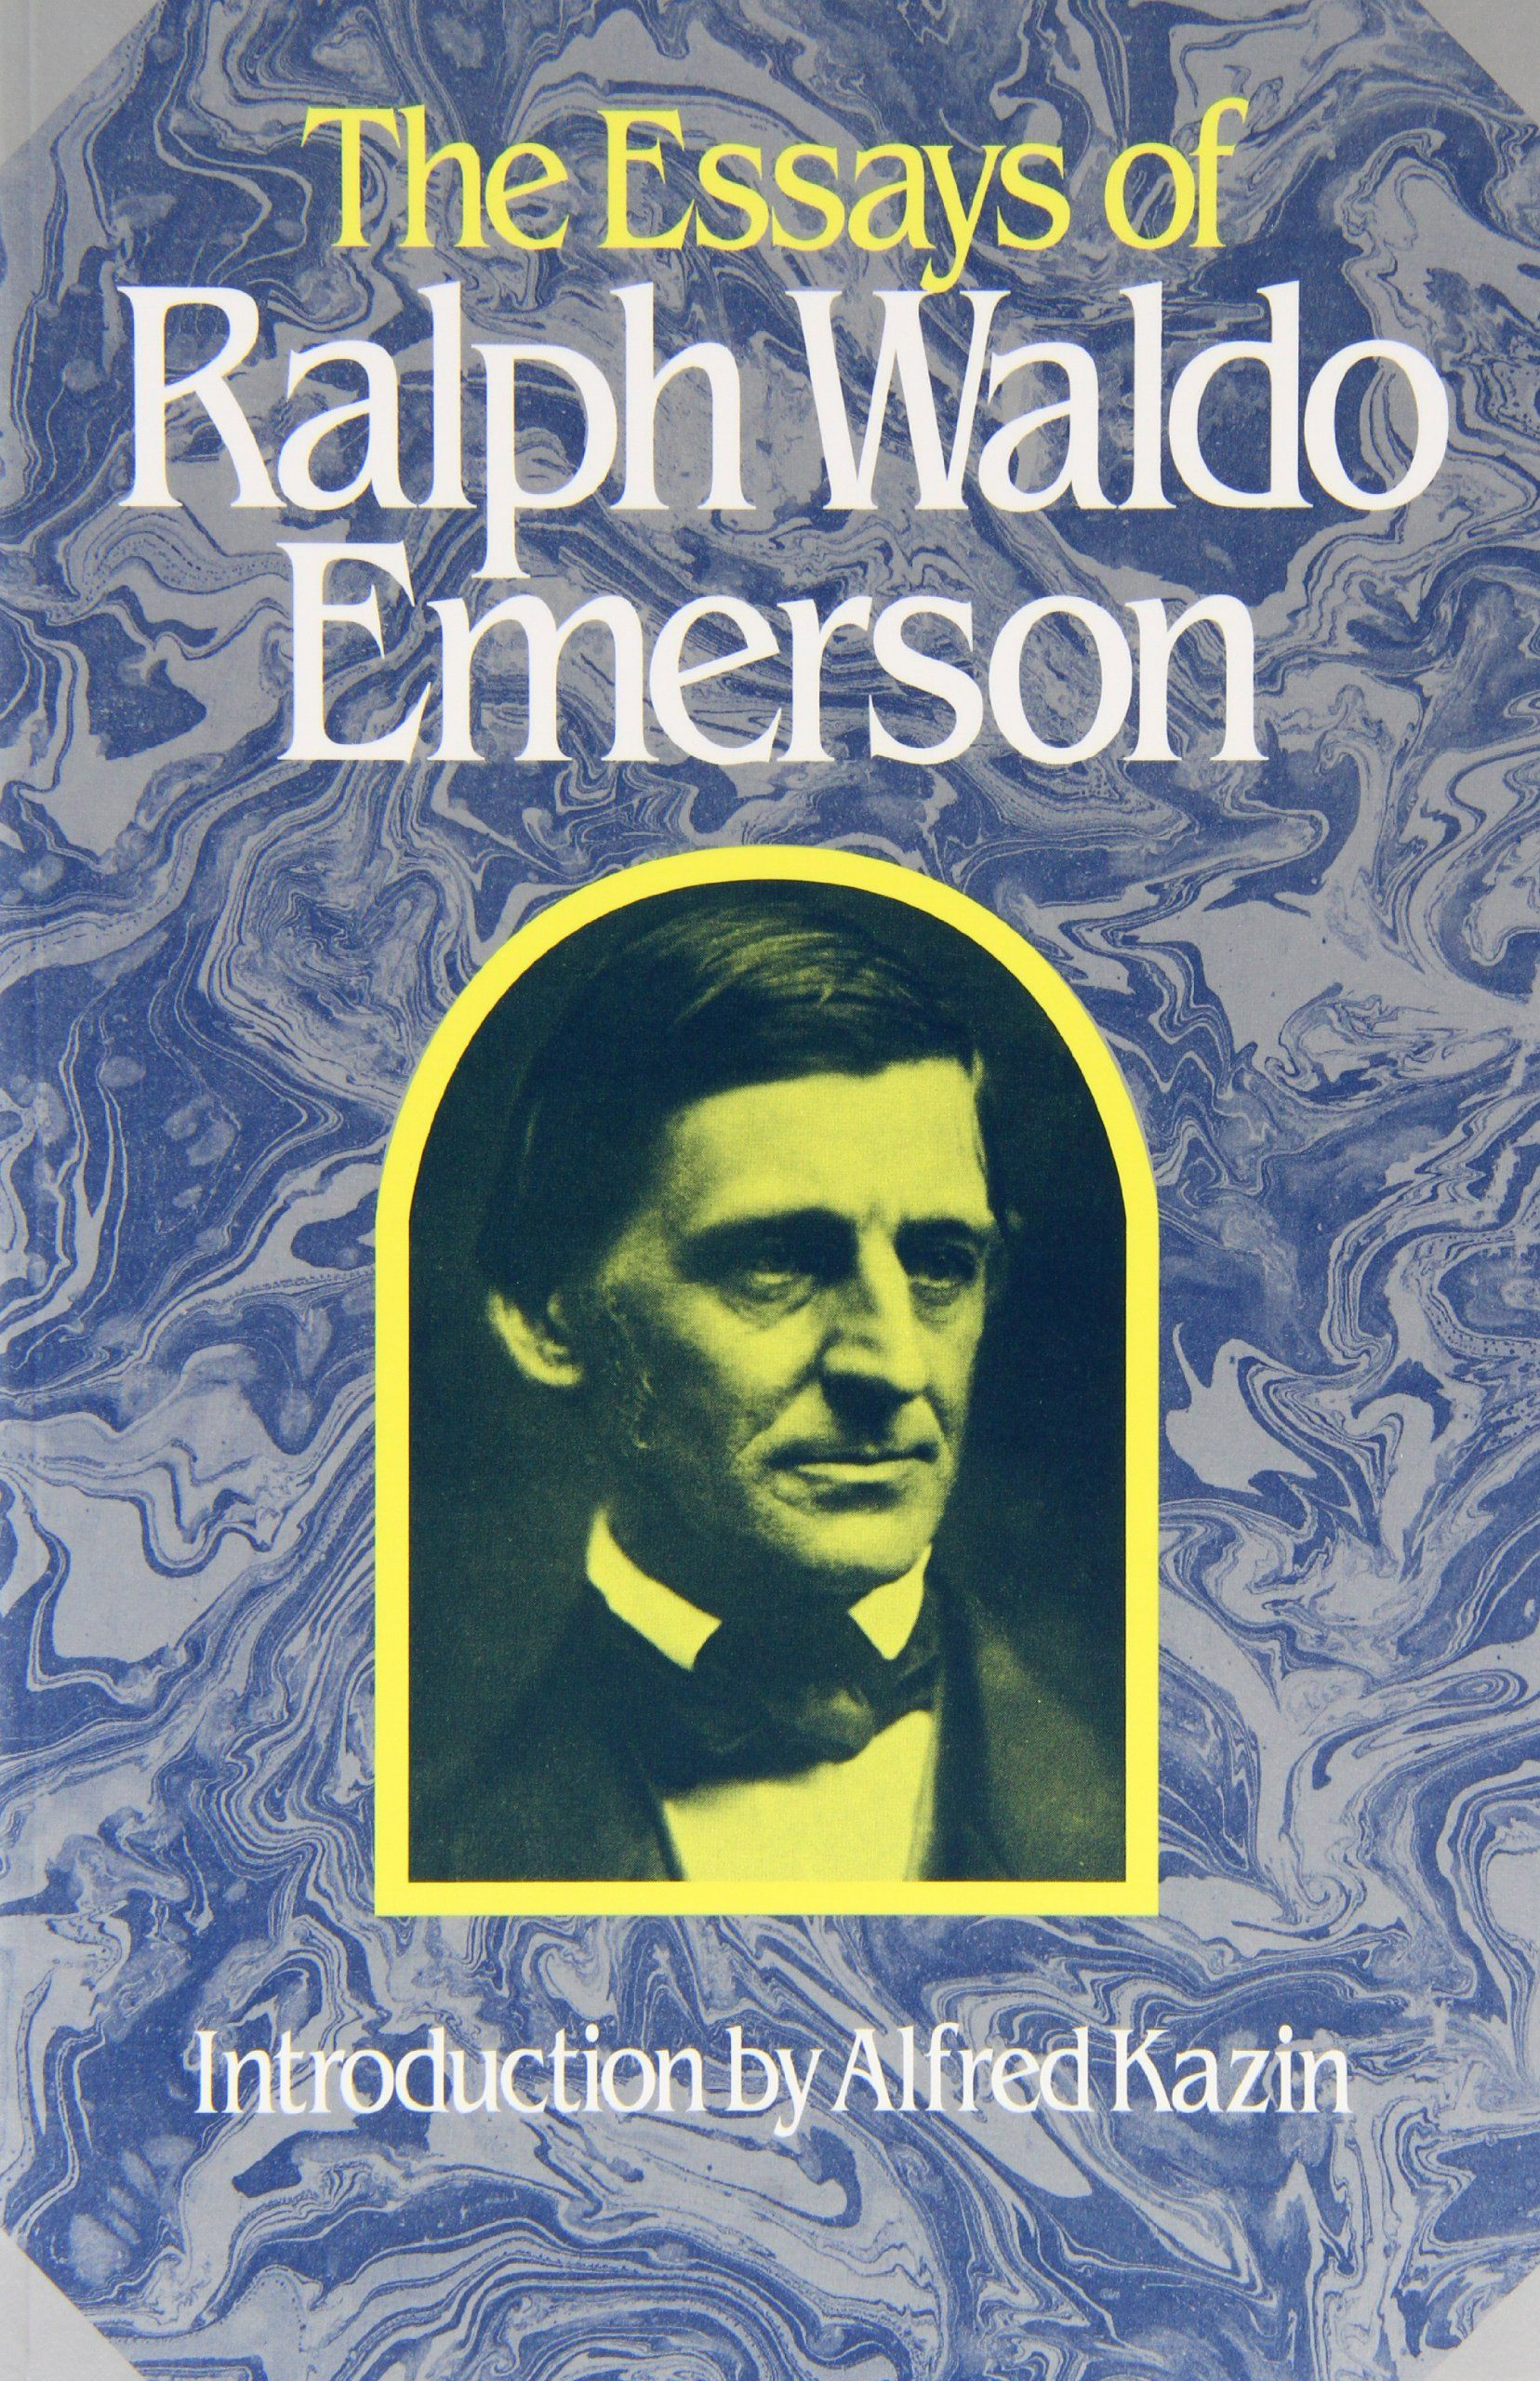 The essays of ralph waldo emerson this book and especially